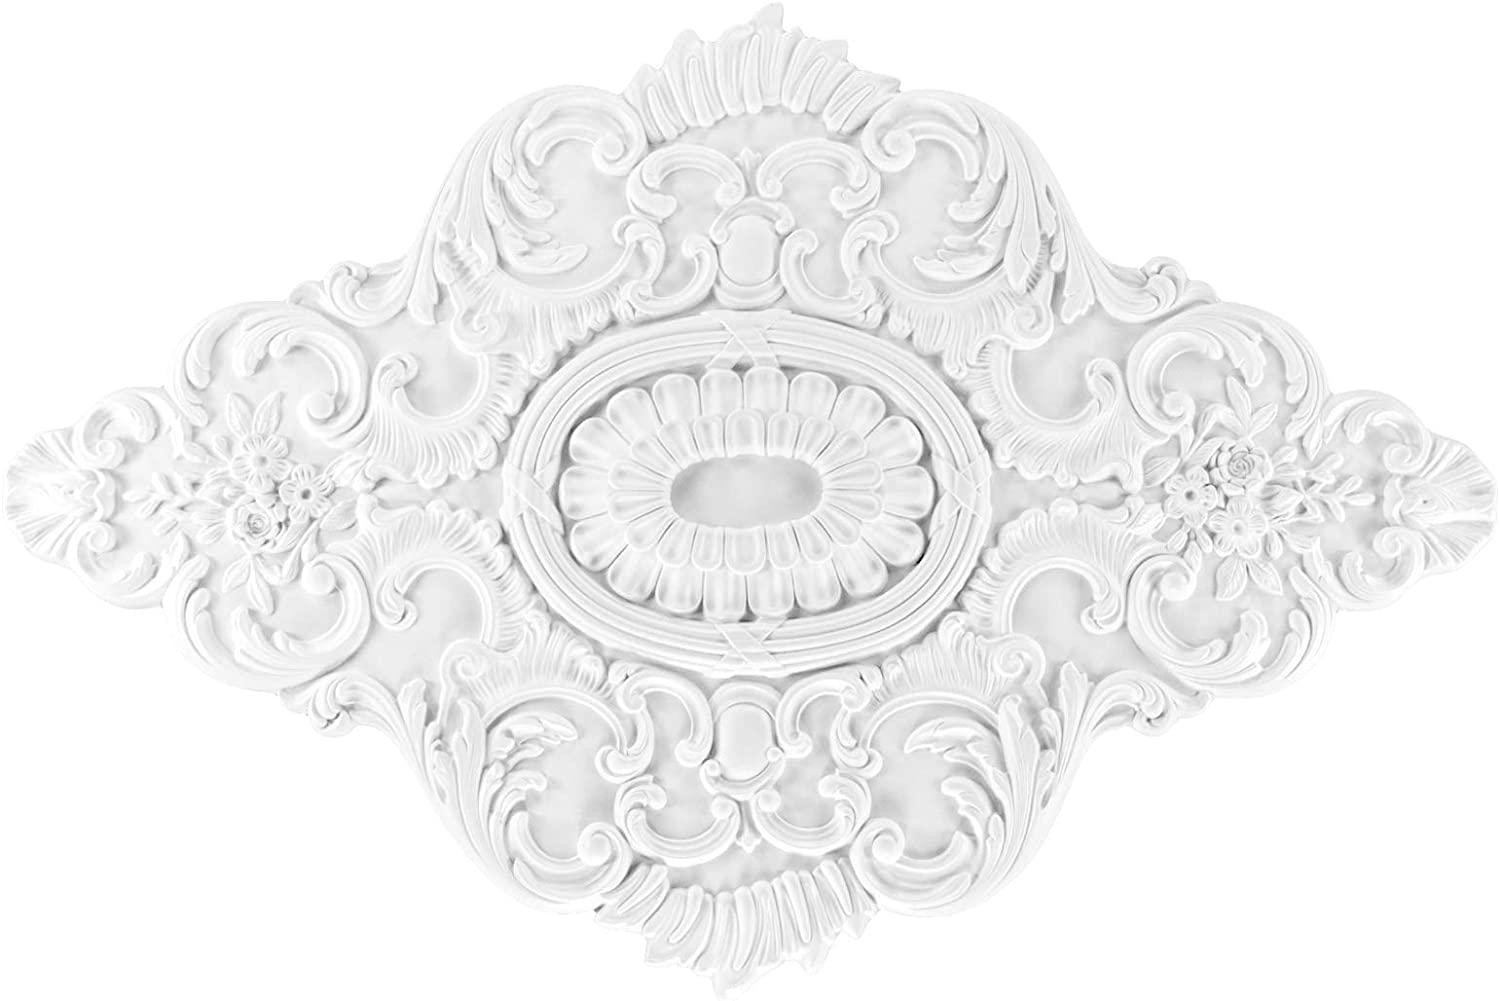 Grand Decor Dekor PU Stuck Decke R161 1080x730mm 1 Rosette